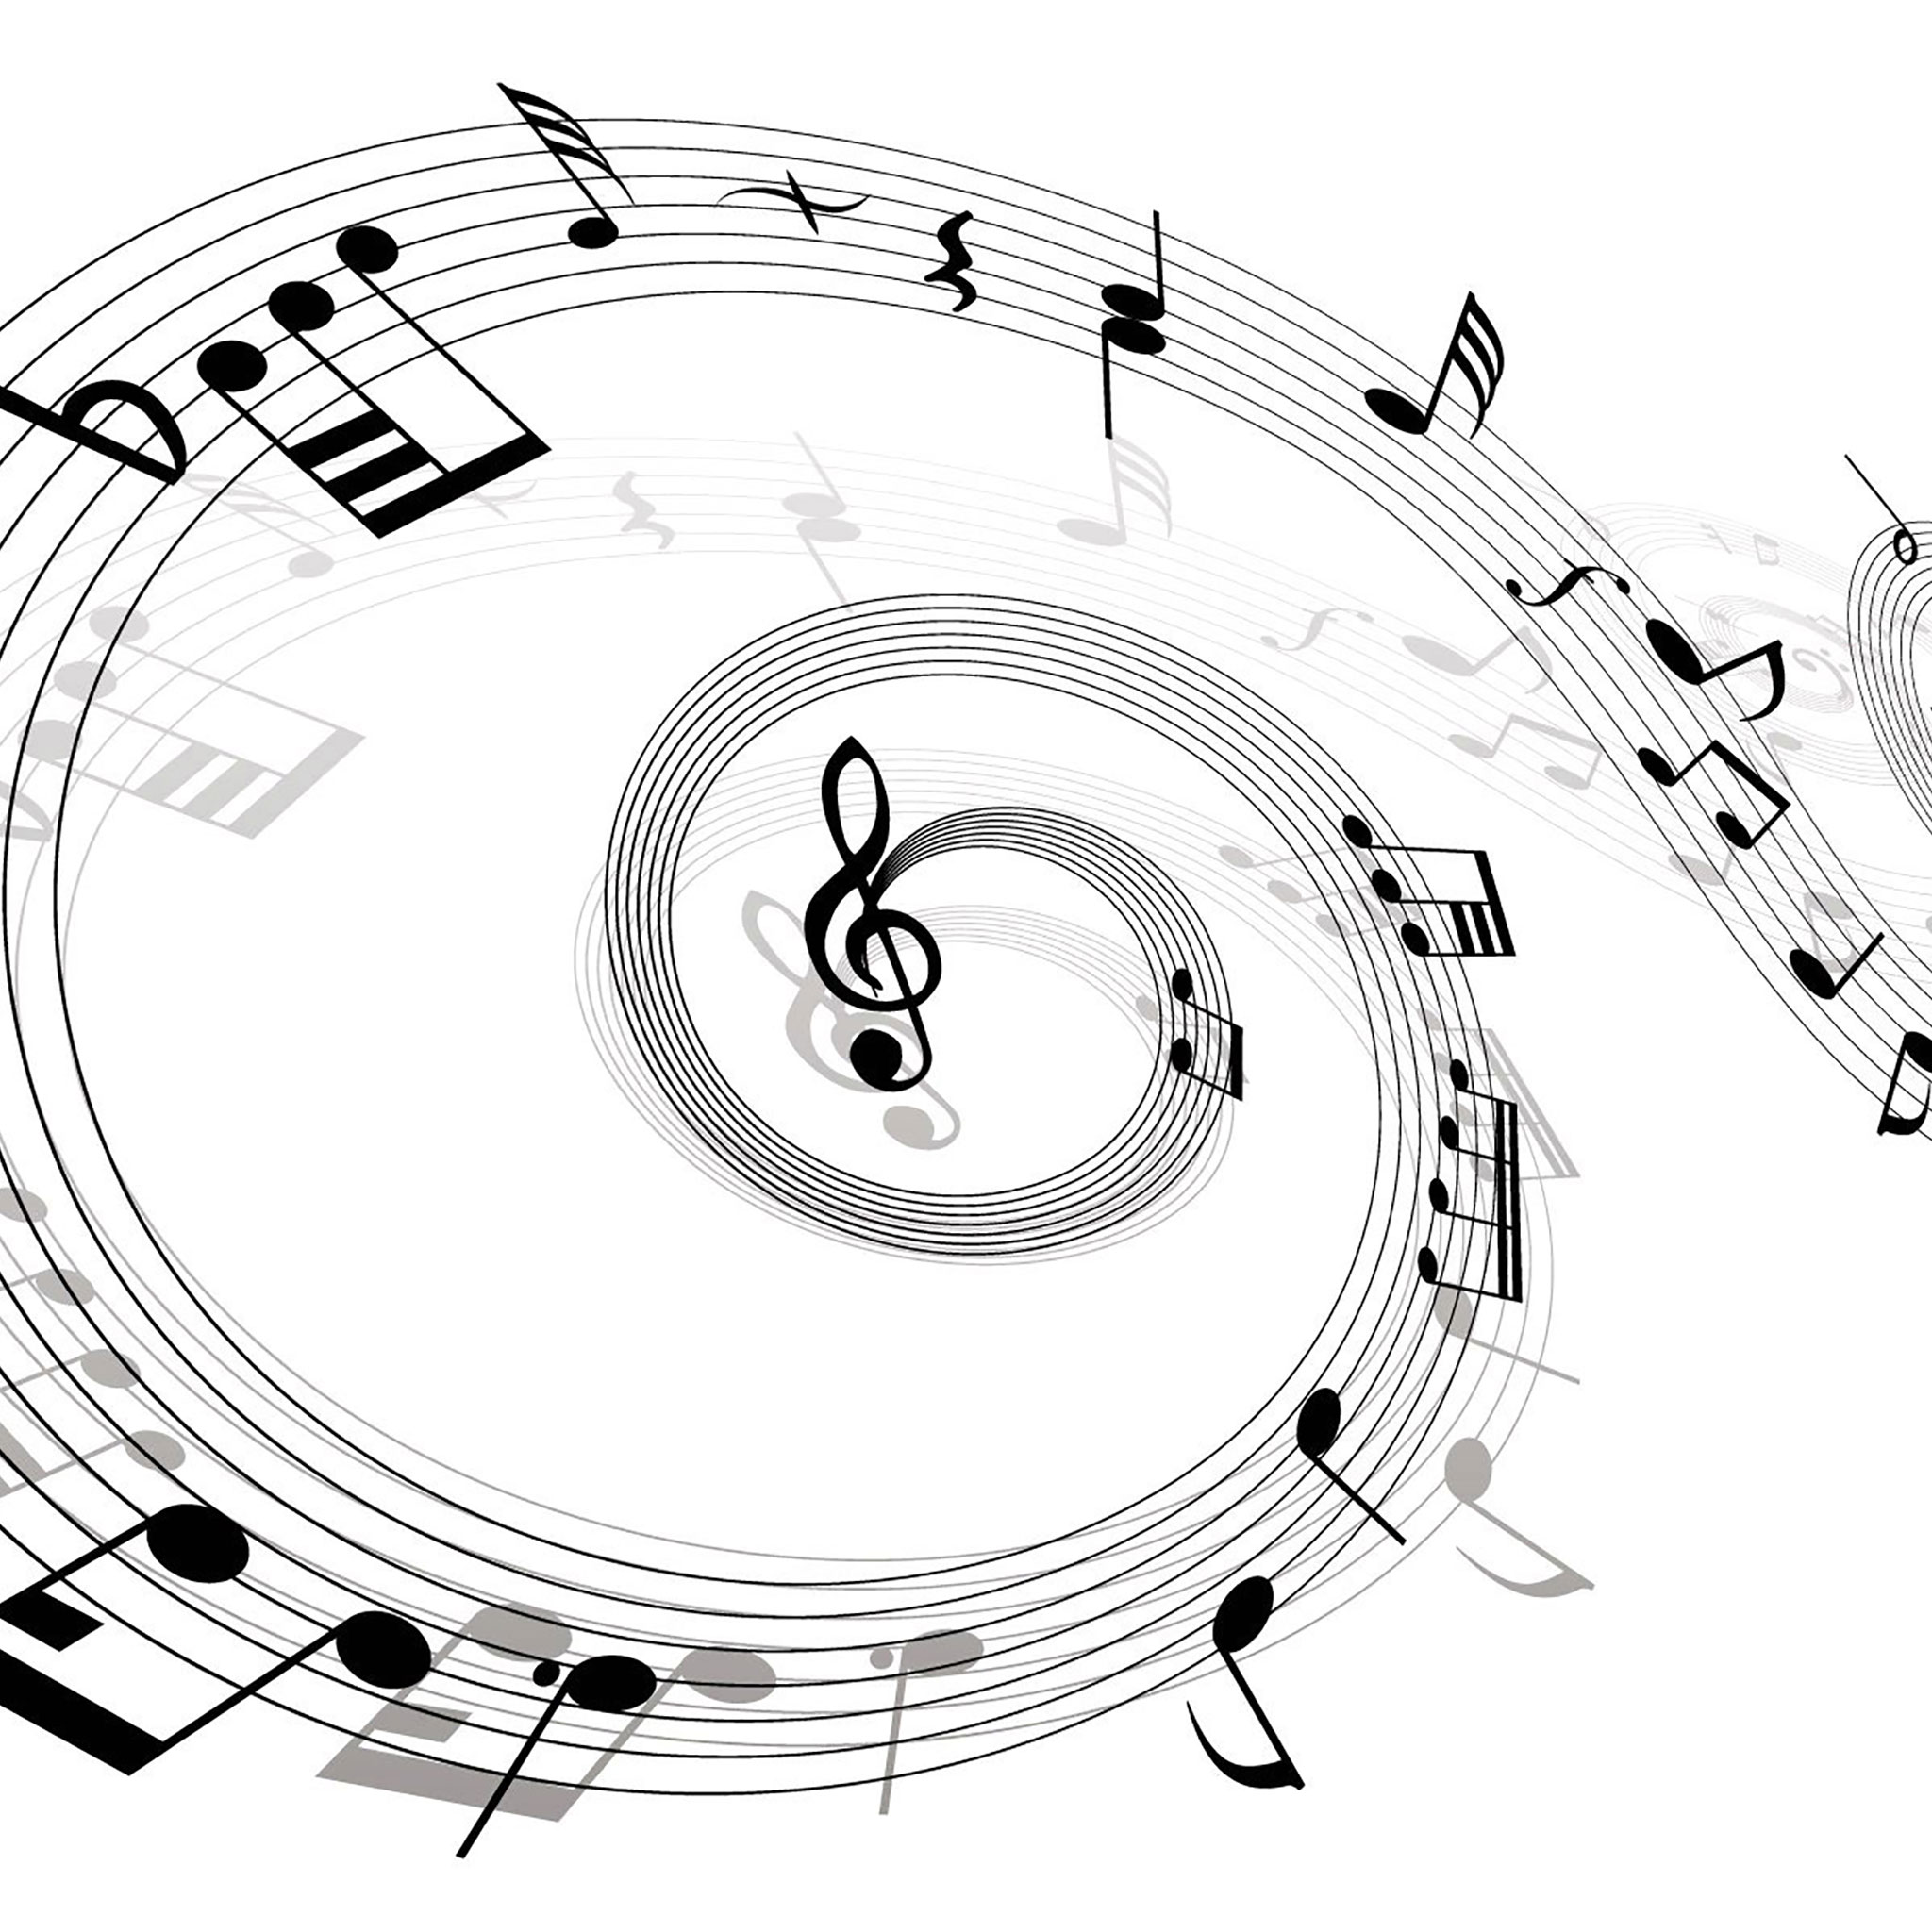 Amazing Wallpaper Music Ipad - white-ipad-wallpaper-7  Perfect Image Reference_36145.jpg